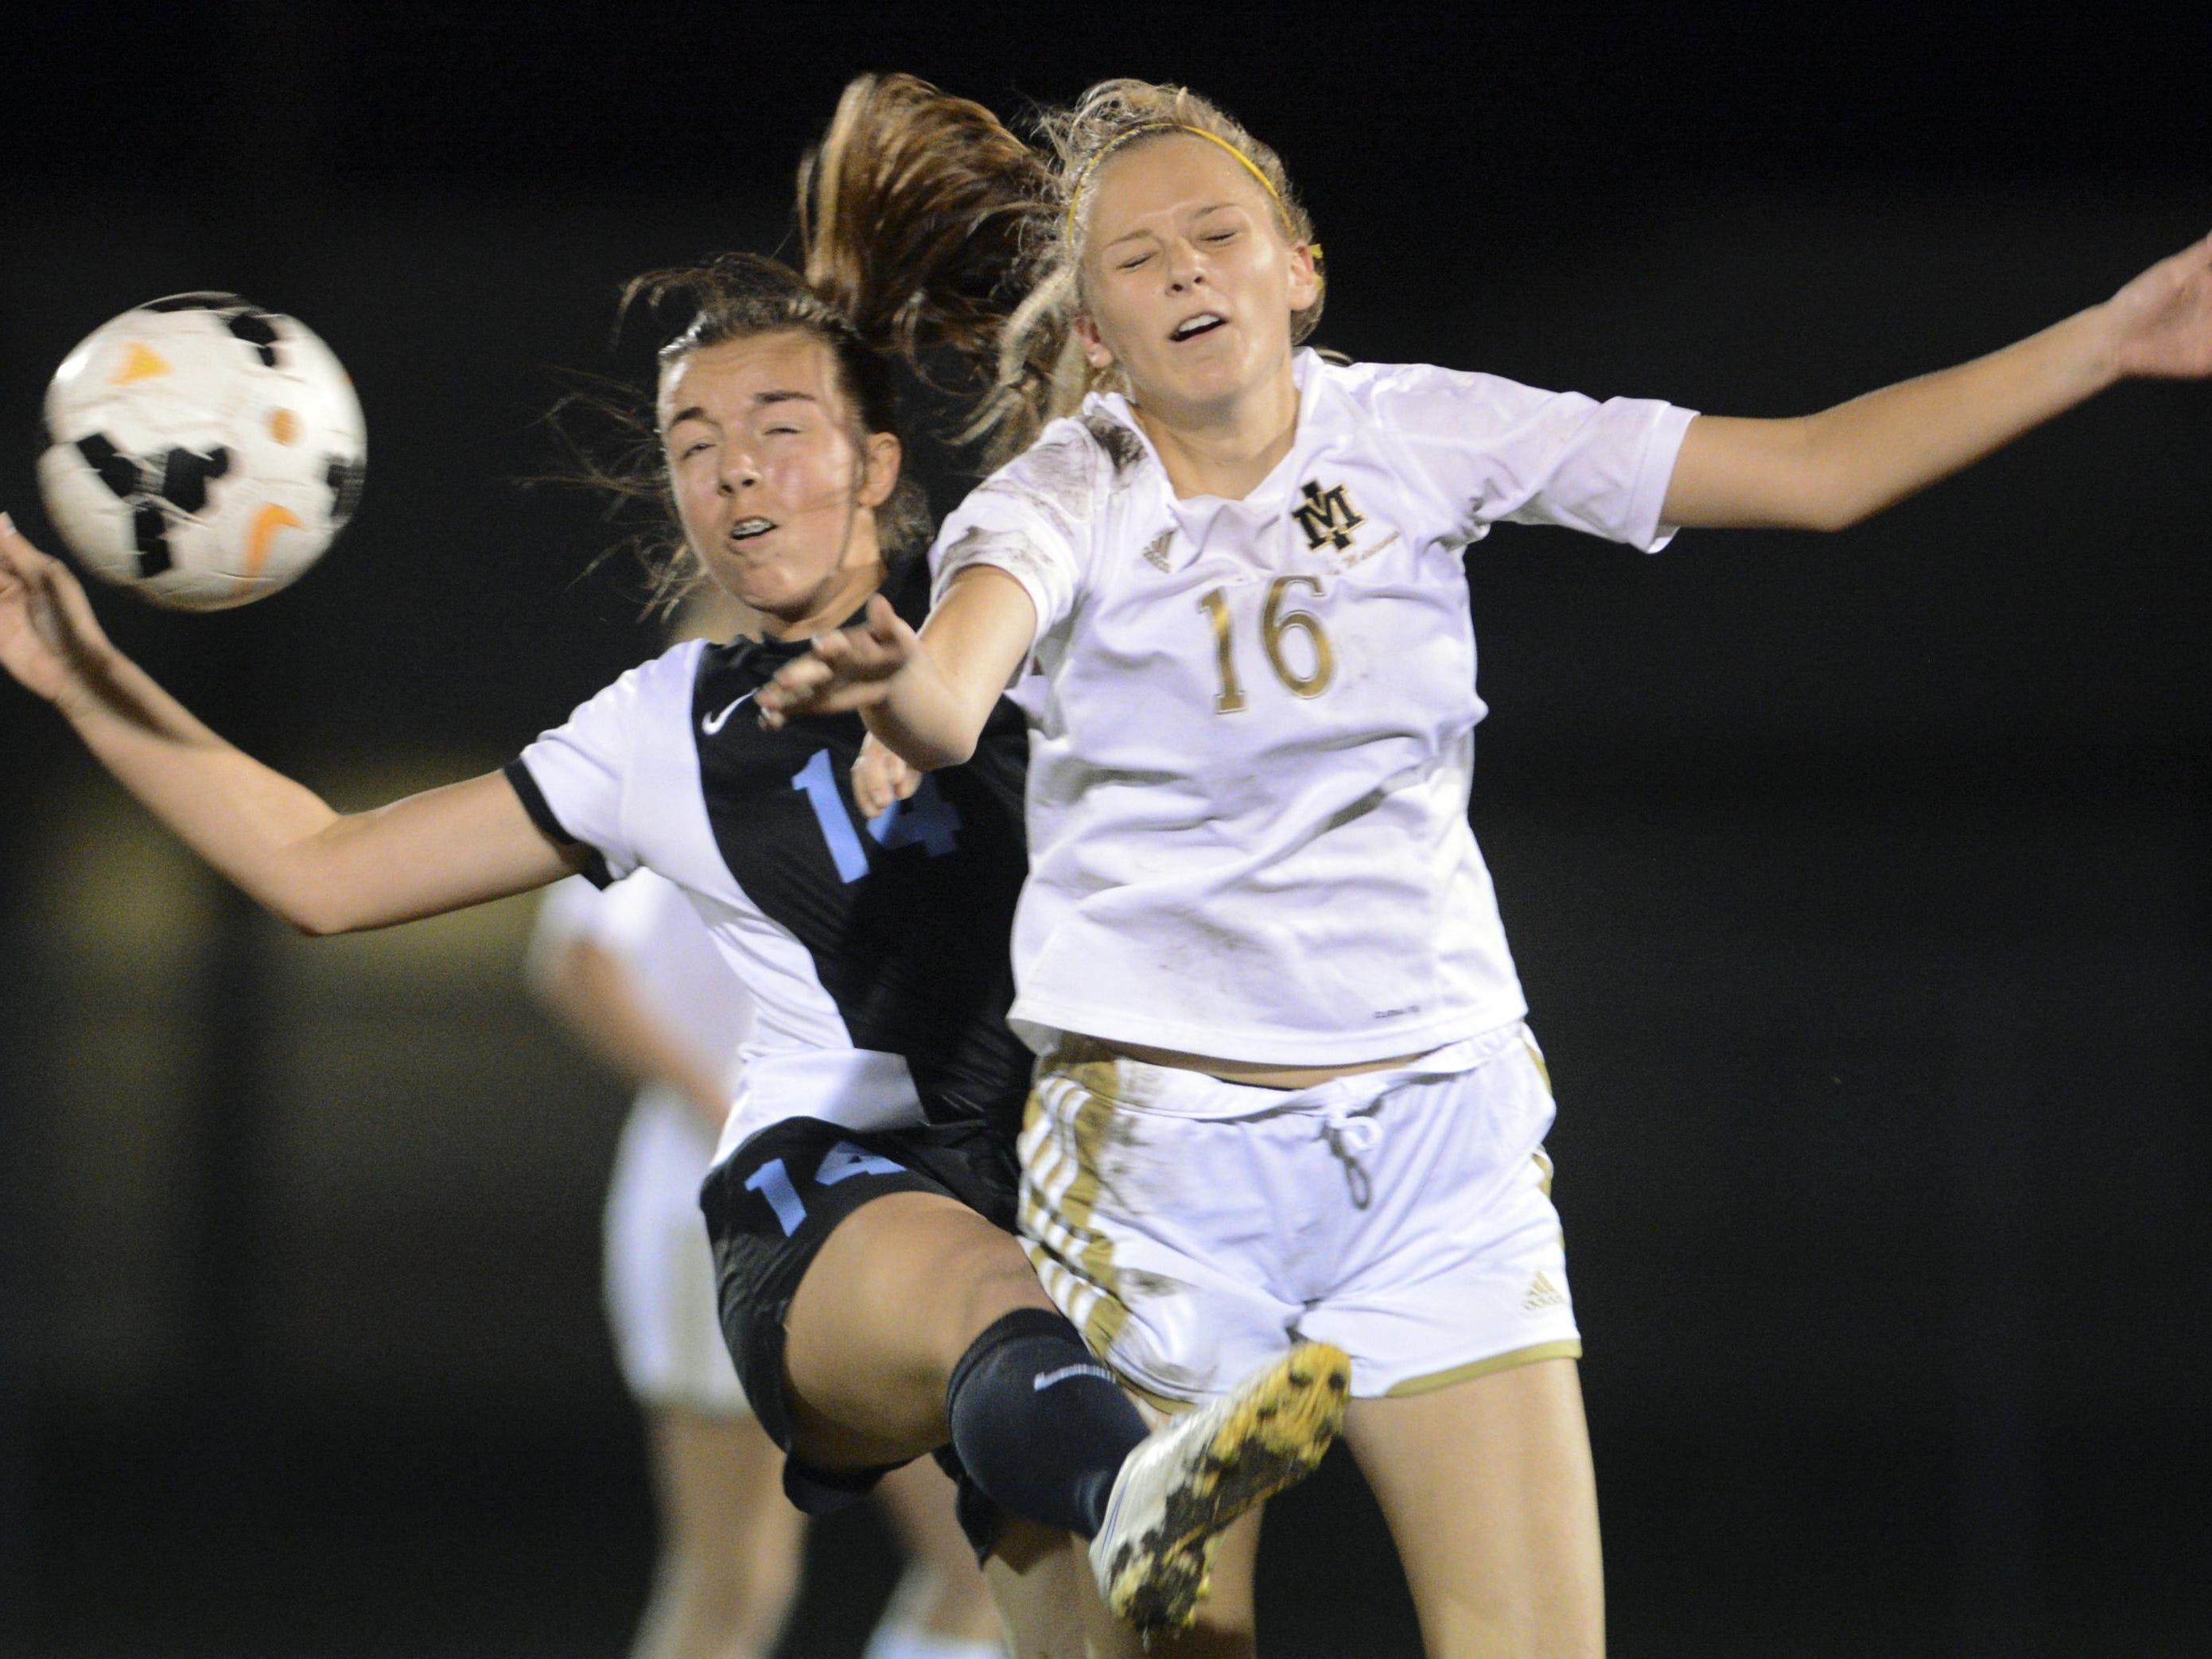 Haley Wardwell of Rockledge and Madeline Miller of Merritt Island collide as they go for a ball during Friday's game.